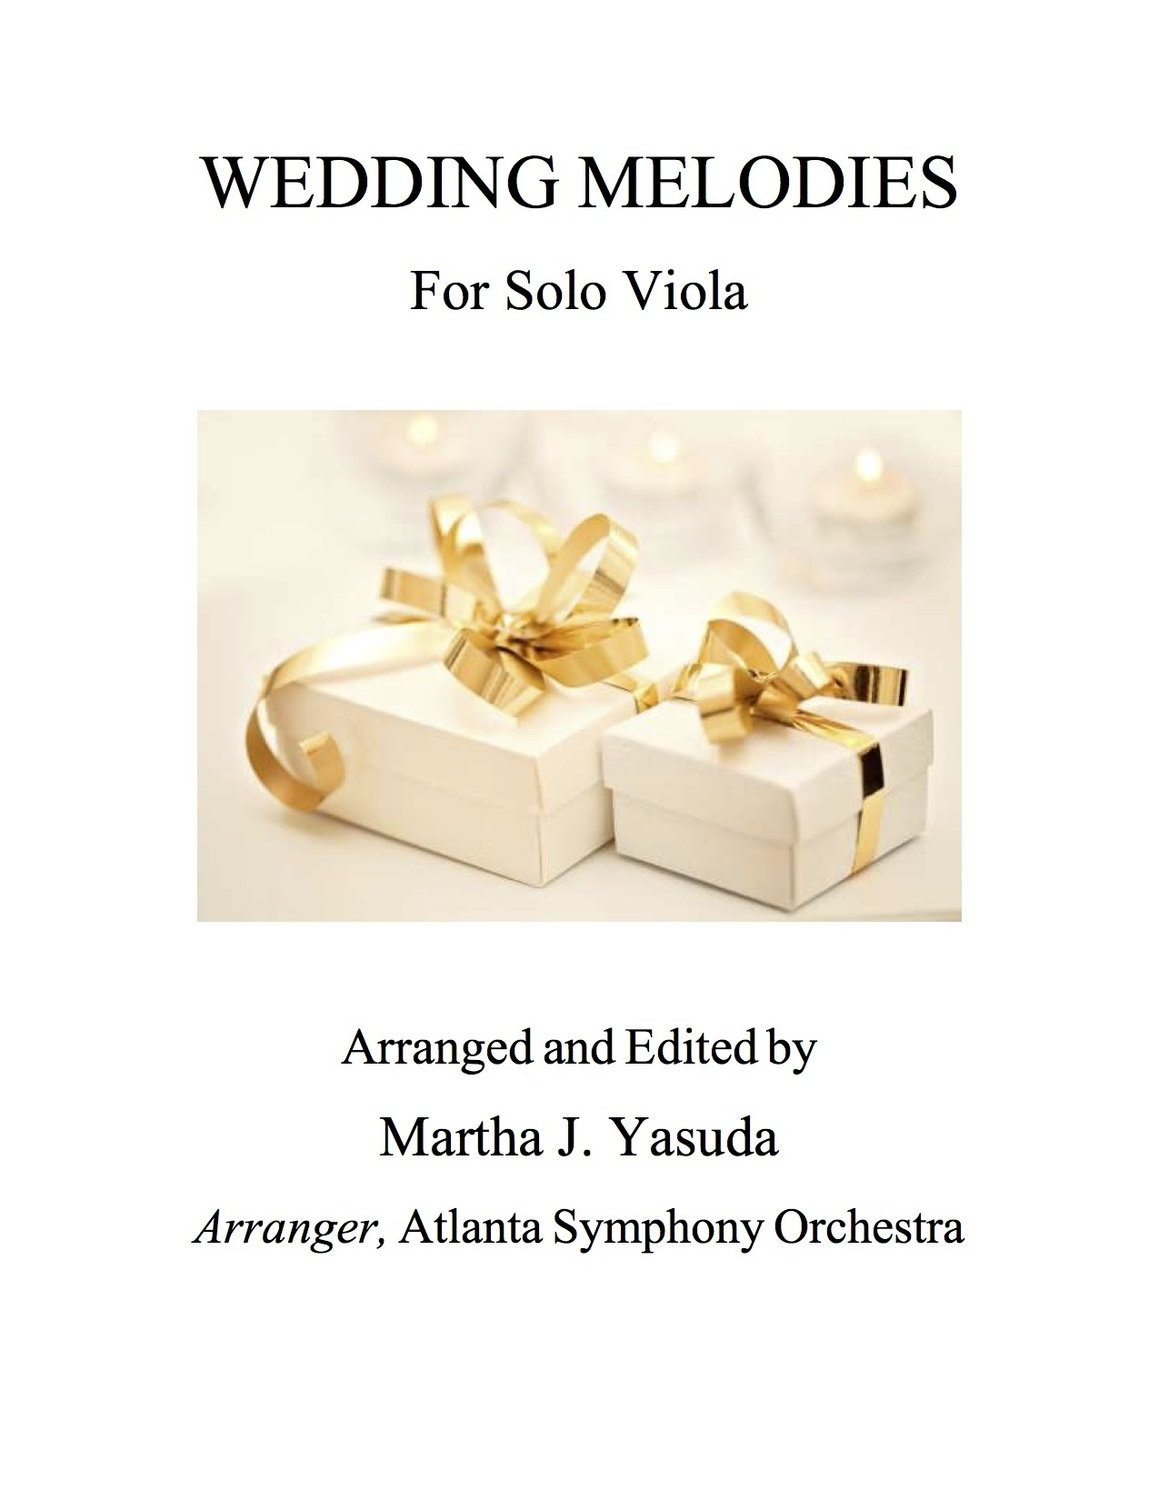 056 - Wedding Melodies for Solo Viola - Double Stops